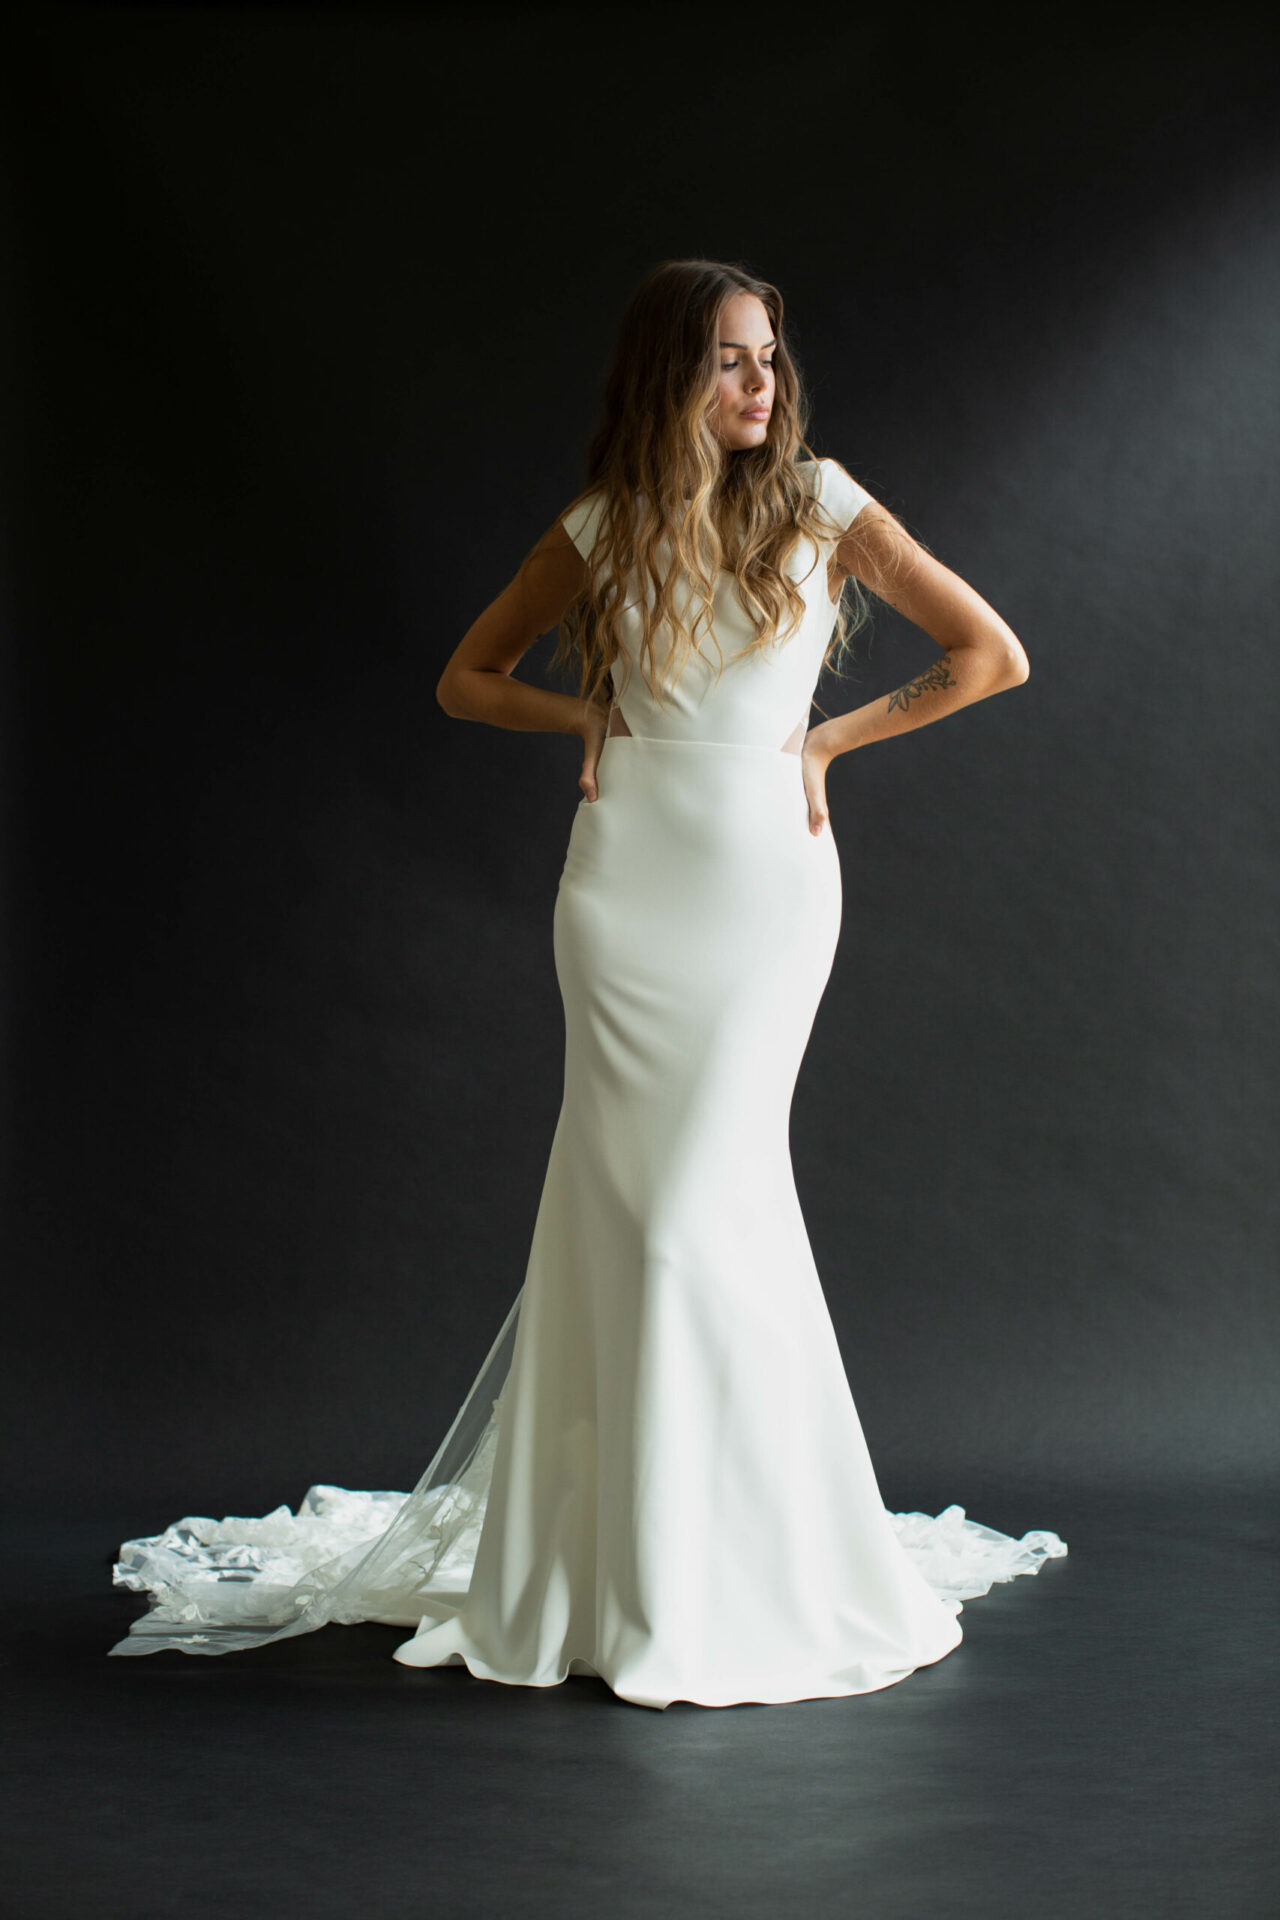 Brie by Anais Anette White Concepts Brautmode Aachen